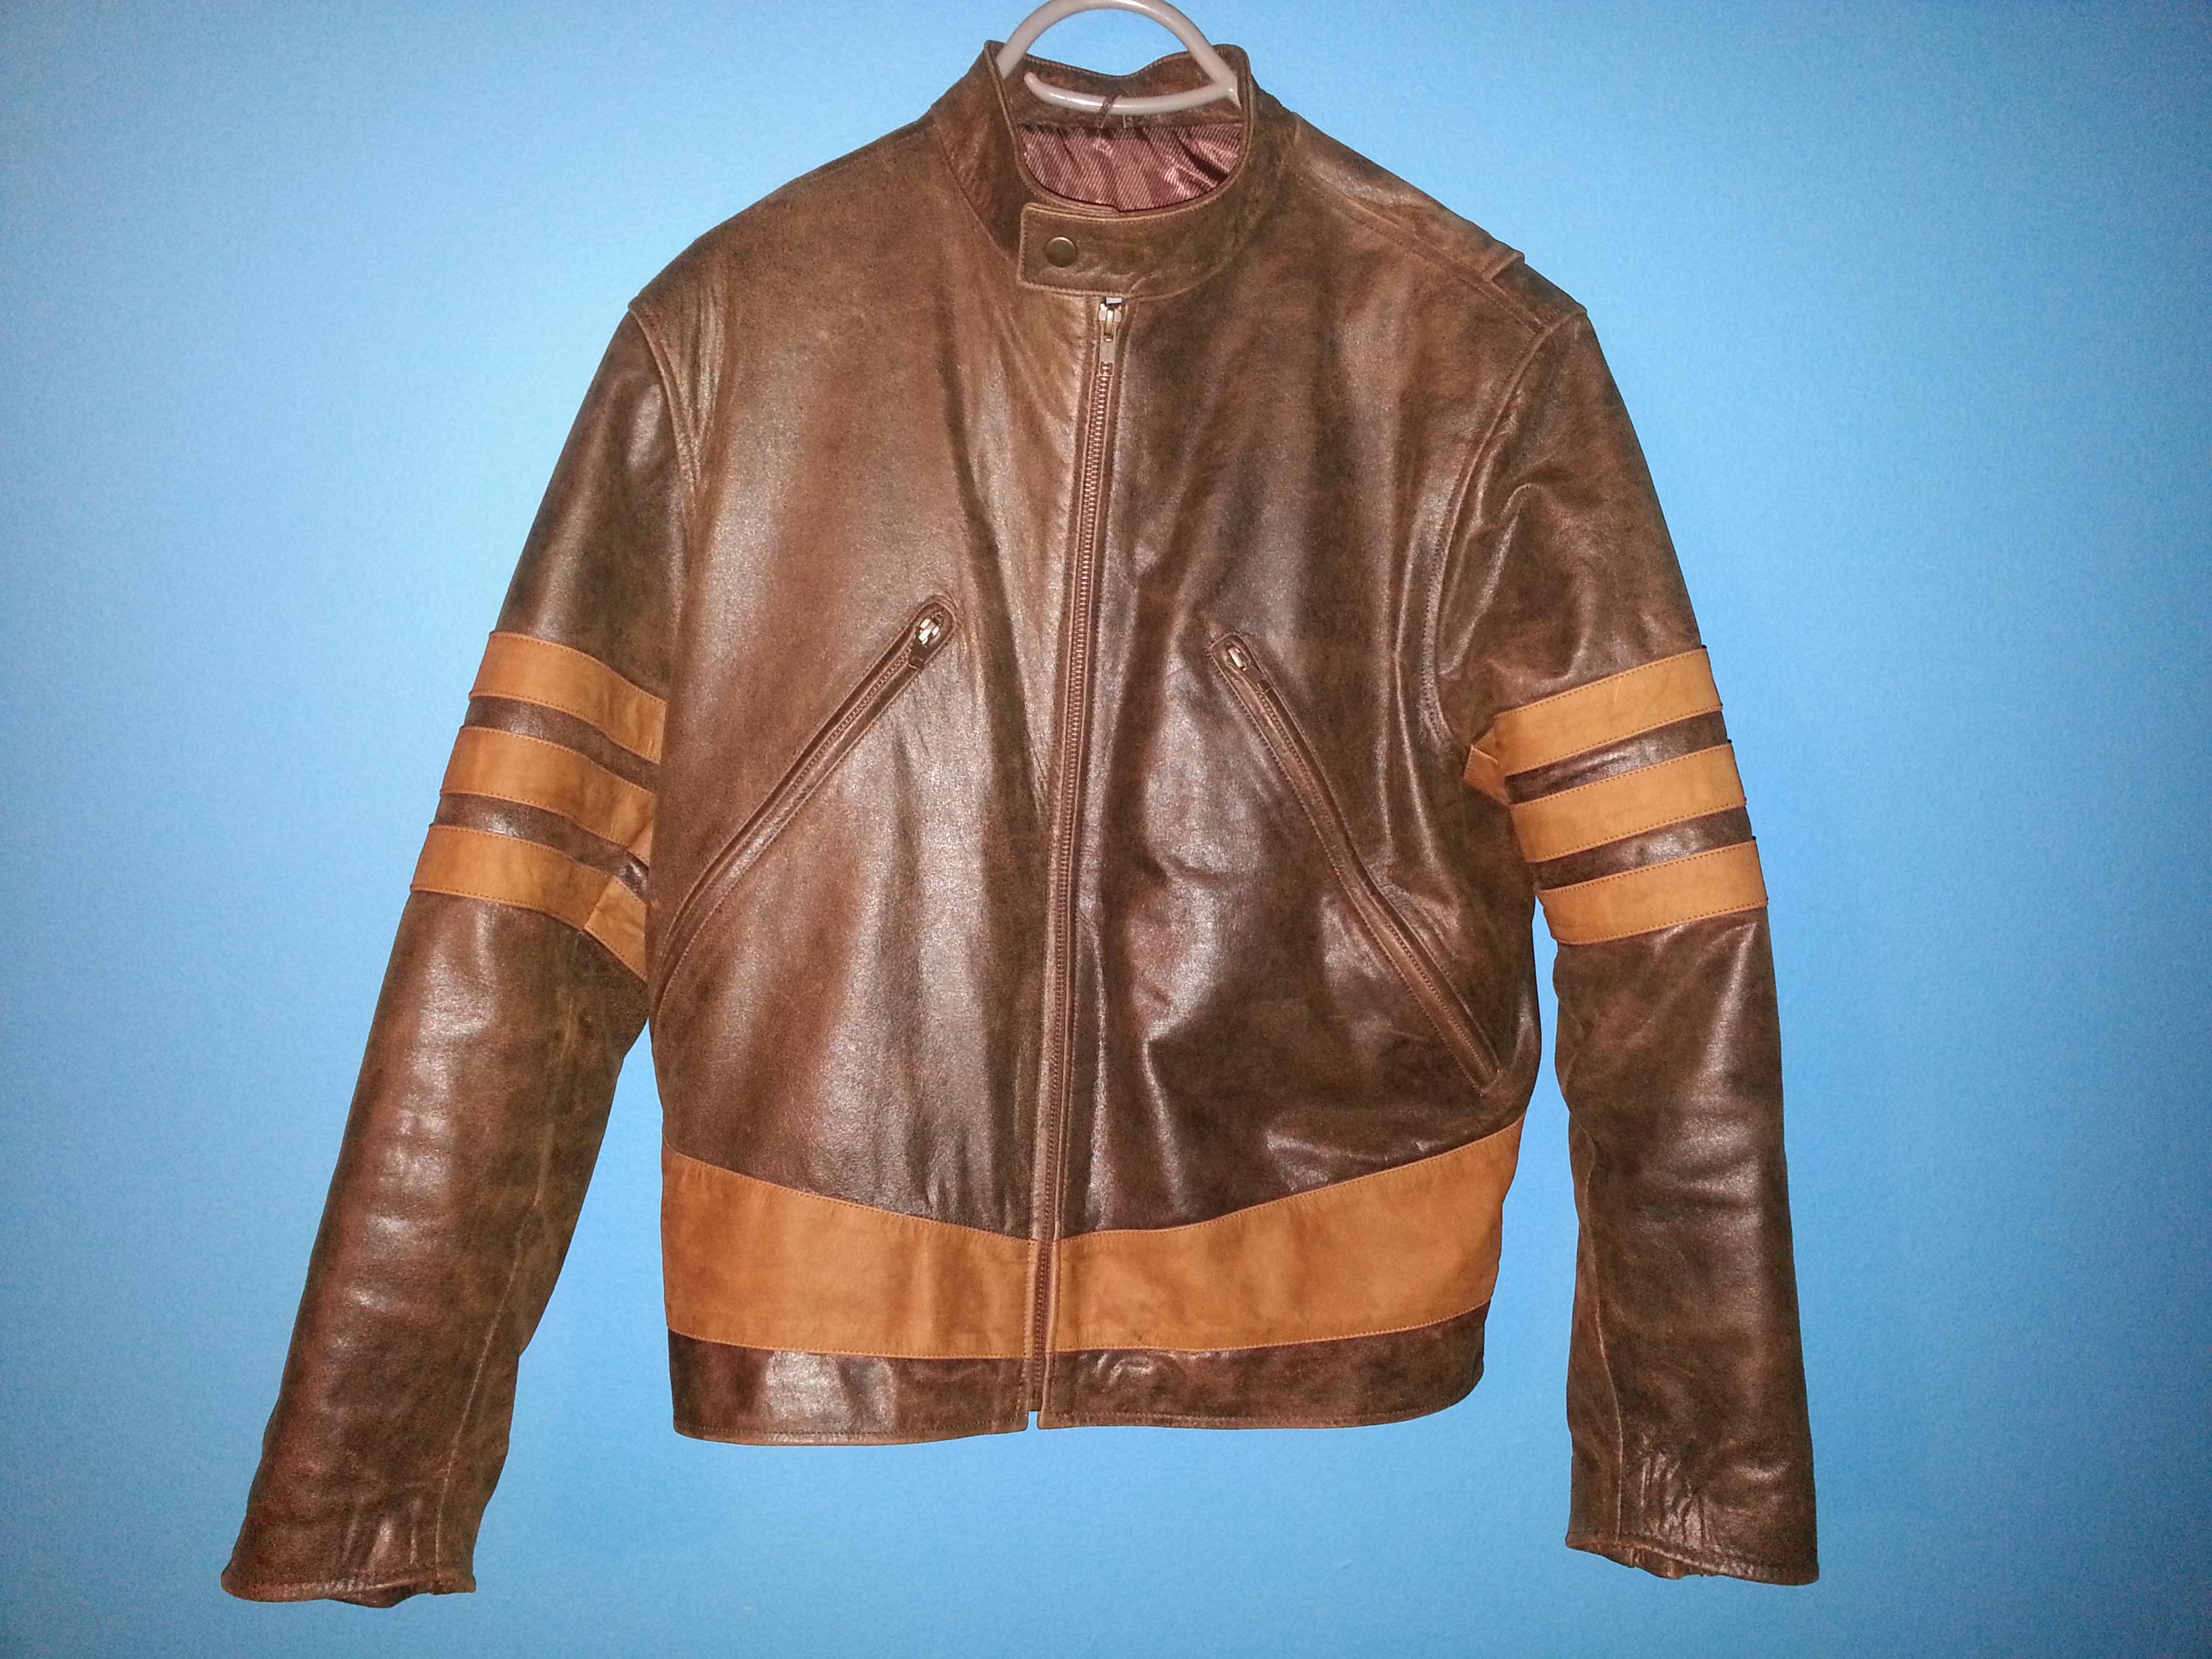 X-Men Wolverine Jacket by Heron Leather